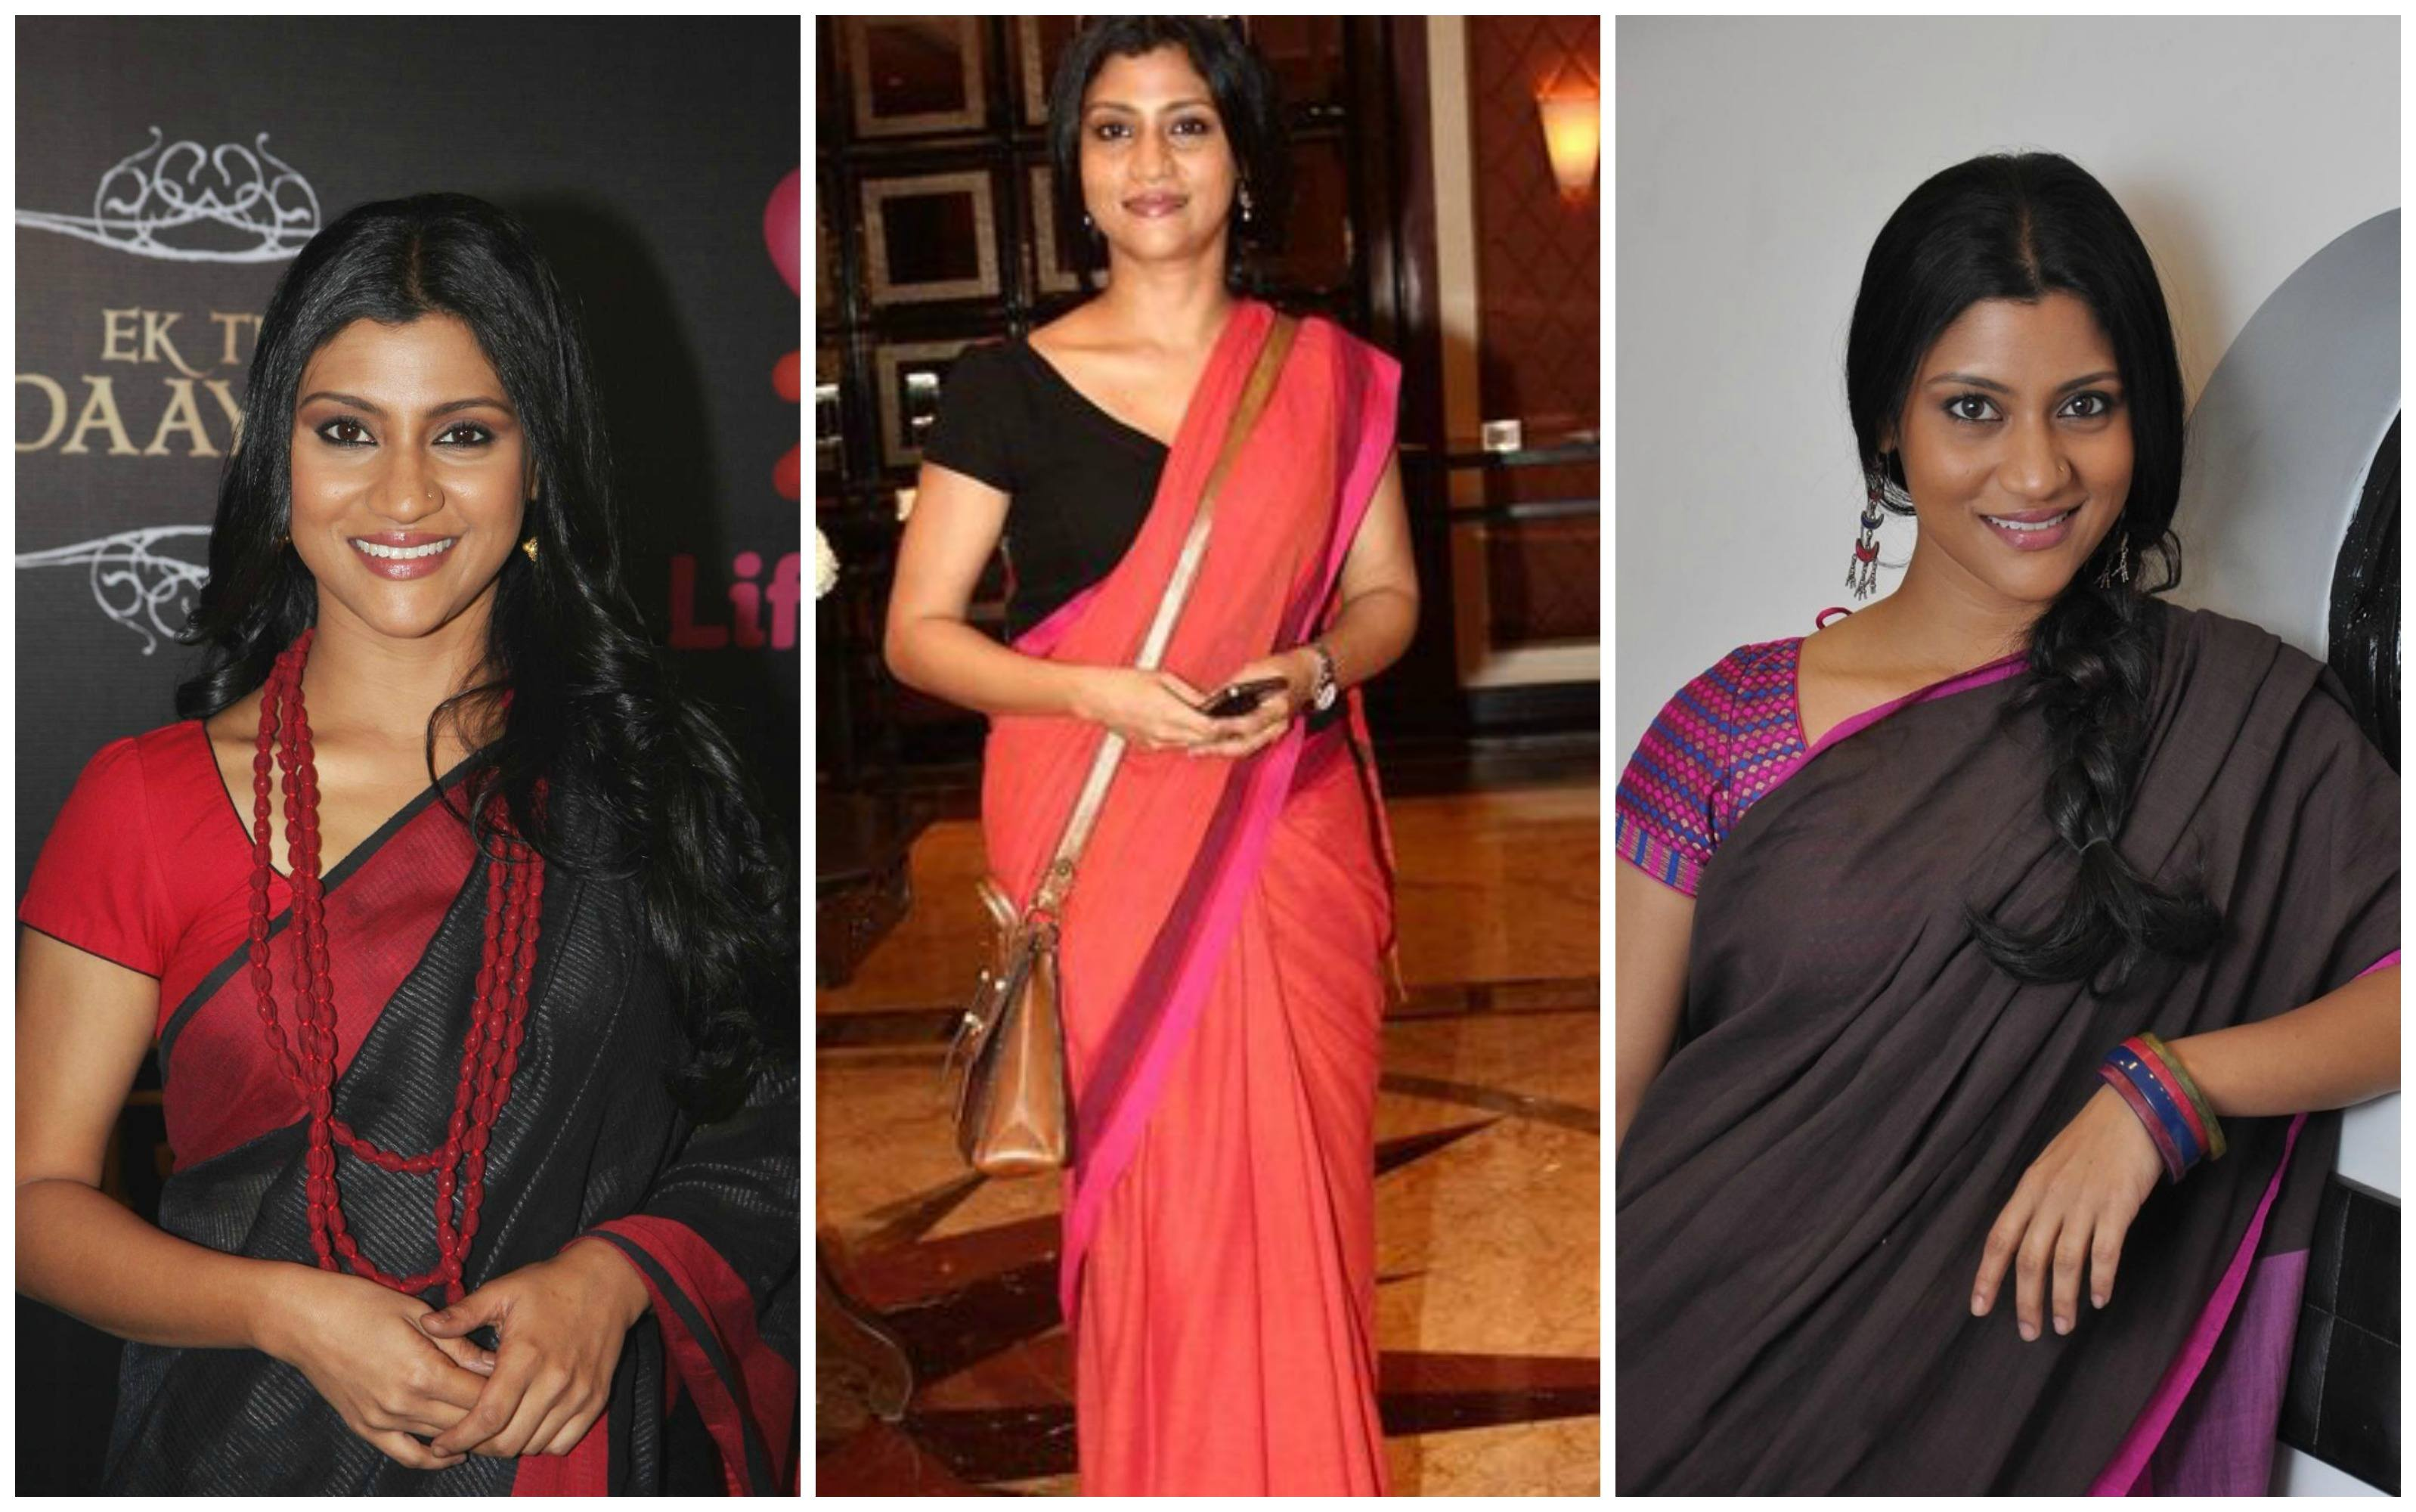 konkona-sen-sharma-wearing-saree How to Wear Saree for Short Height? 14 Pro Tips for Short Girls